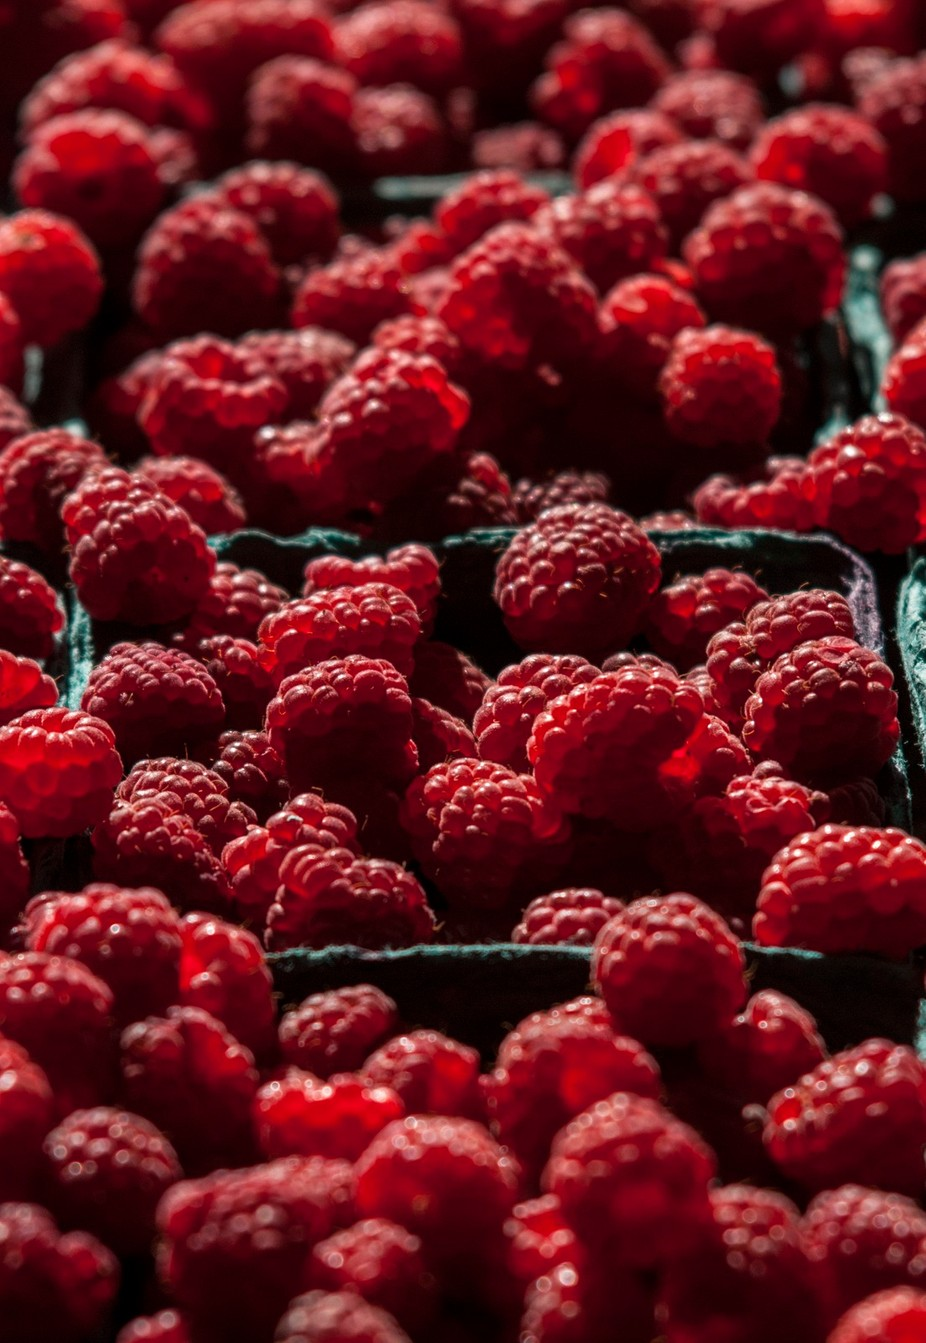 Raspberries by janetcapps - Delicious Photo Contest